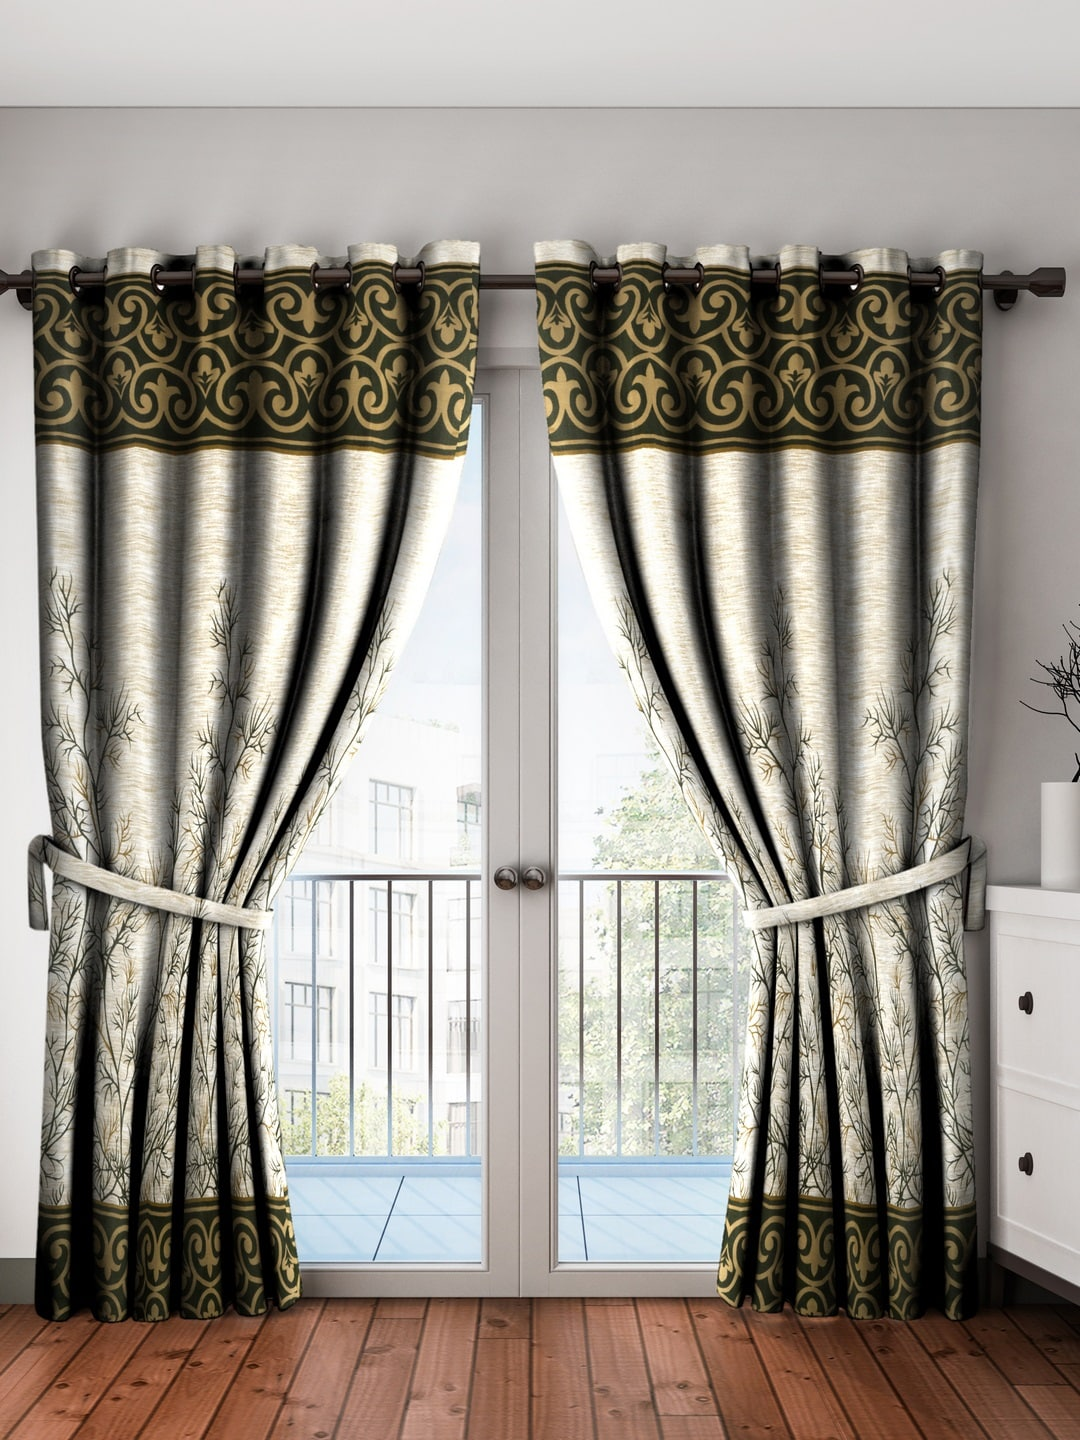 2019 year for girls- Buy curtains stylish online india